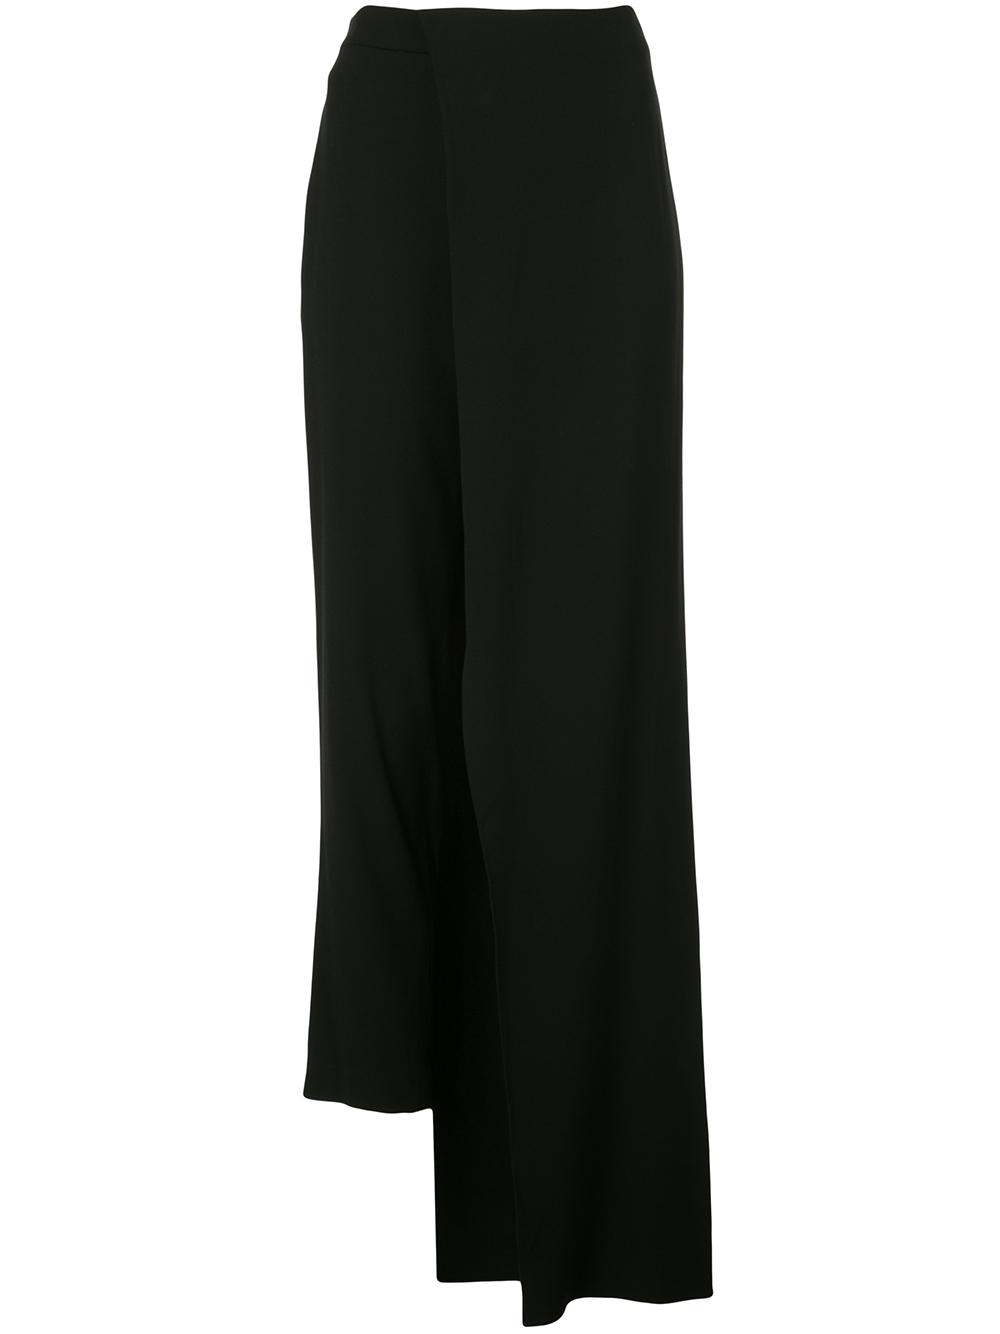 Satin Crepe Pant With Half Skirt Overlay